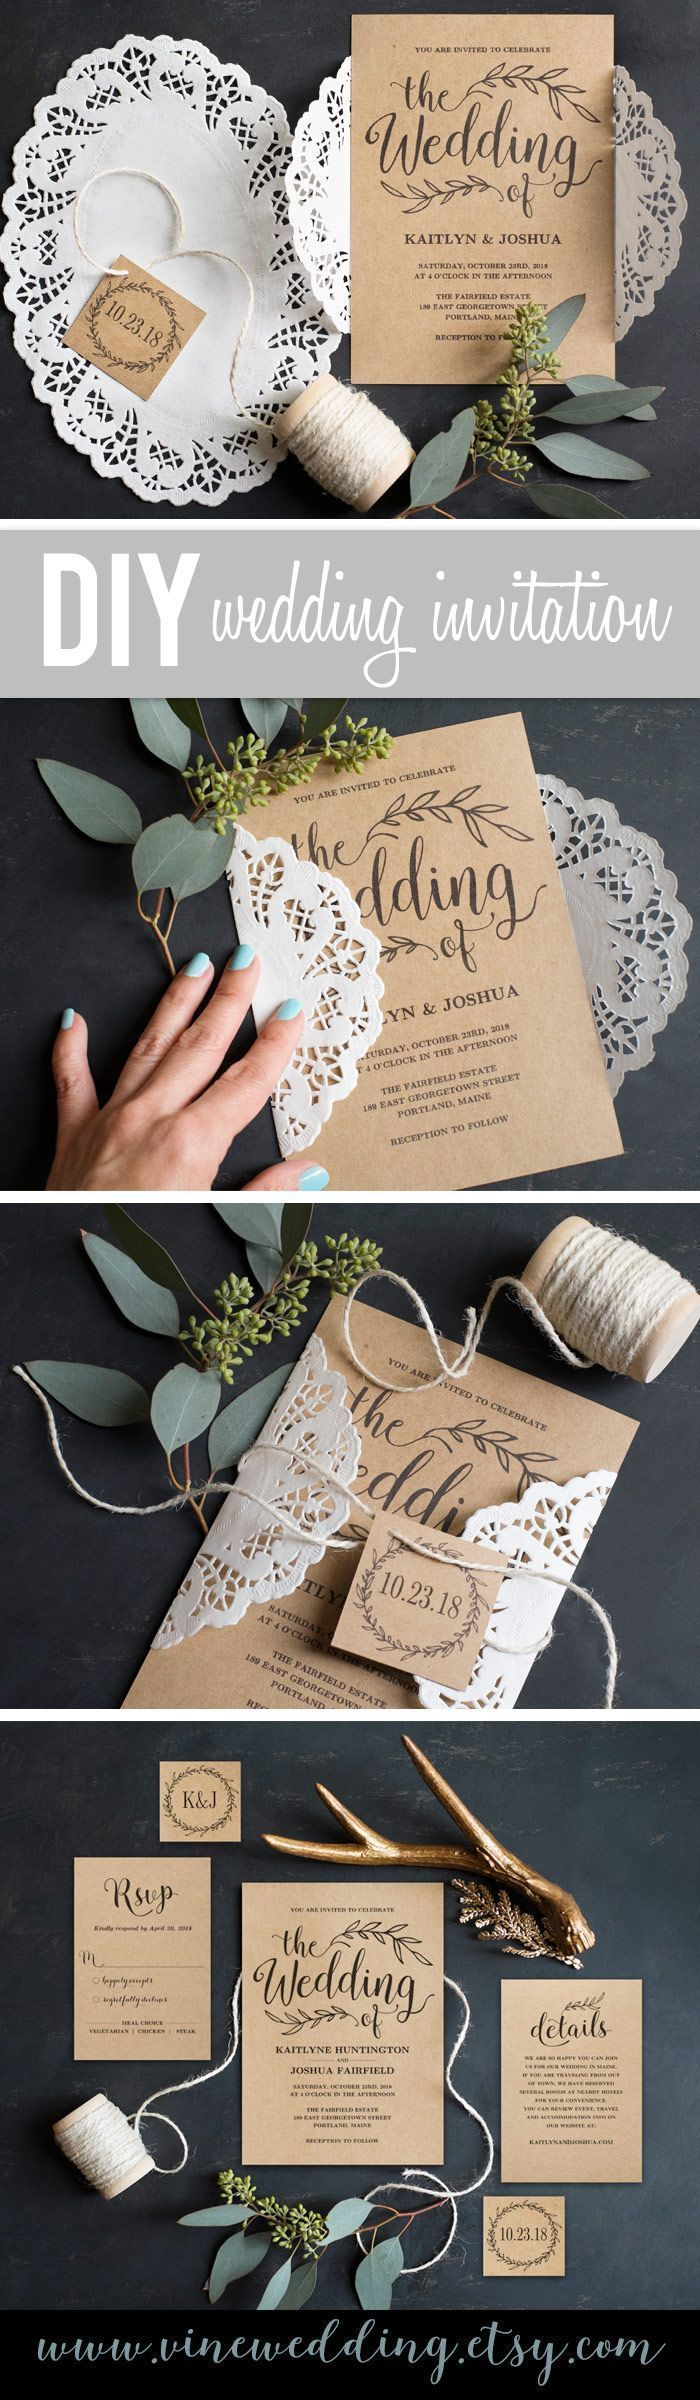 happily ever after wedding invitations%0A Maps And Directions Driving